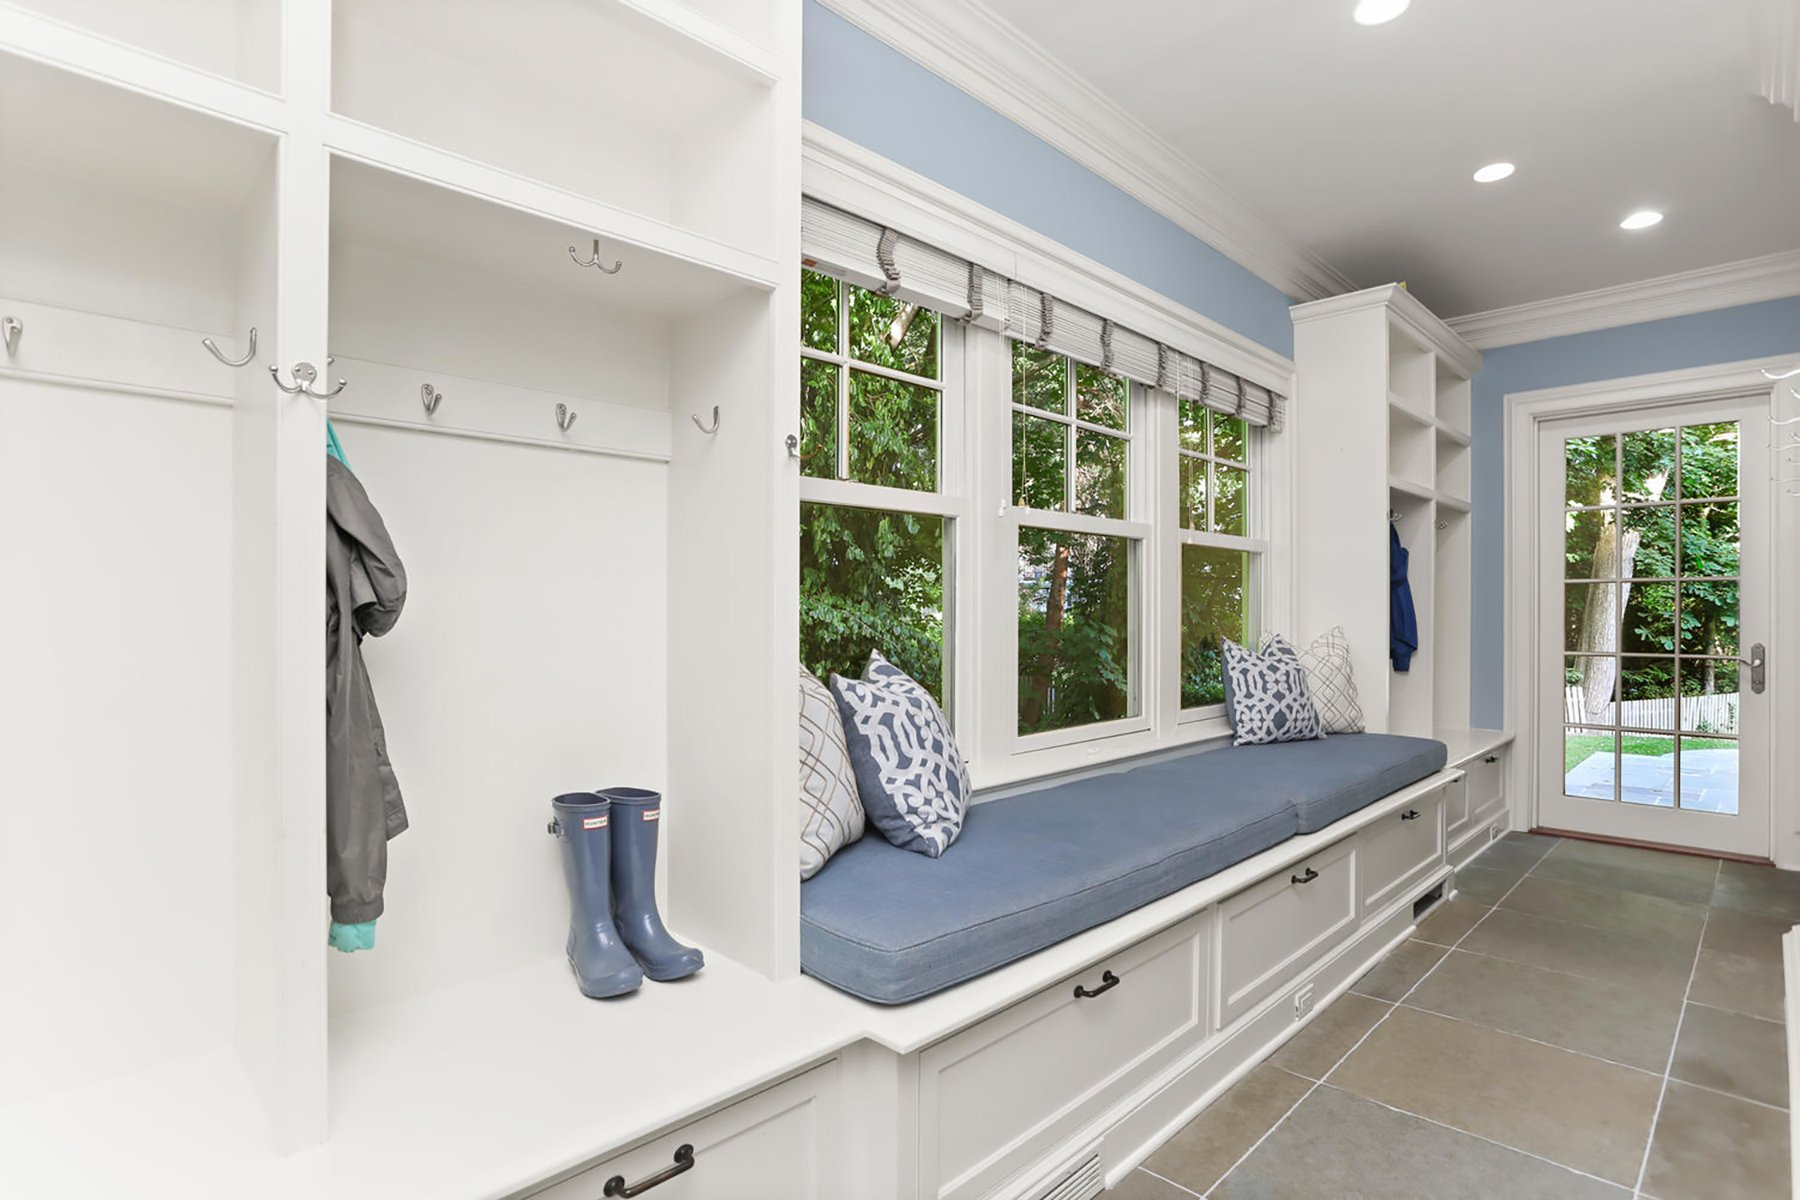 Mudroom window seat with storage bin base. Blue cushion with throw pillows.